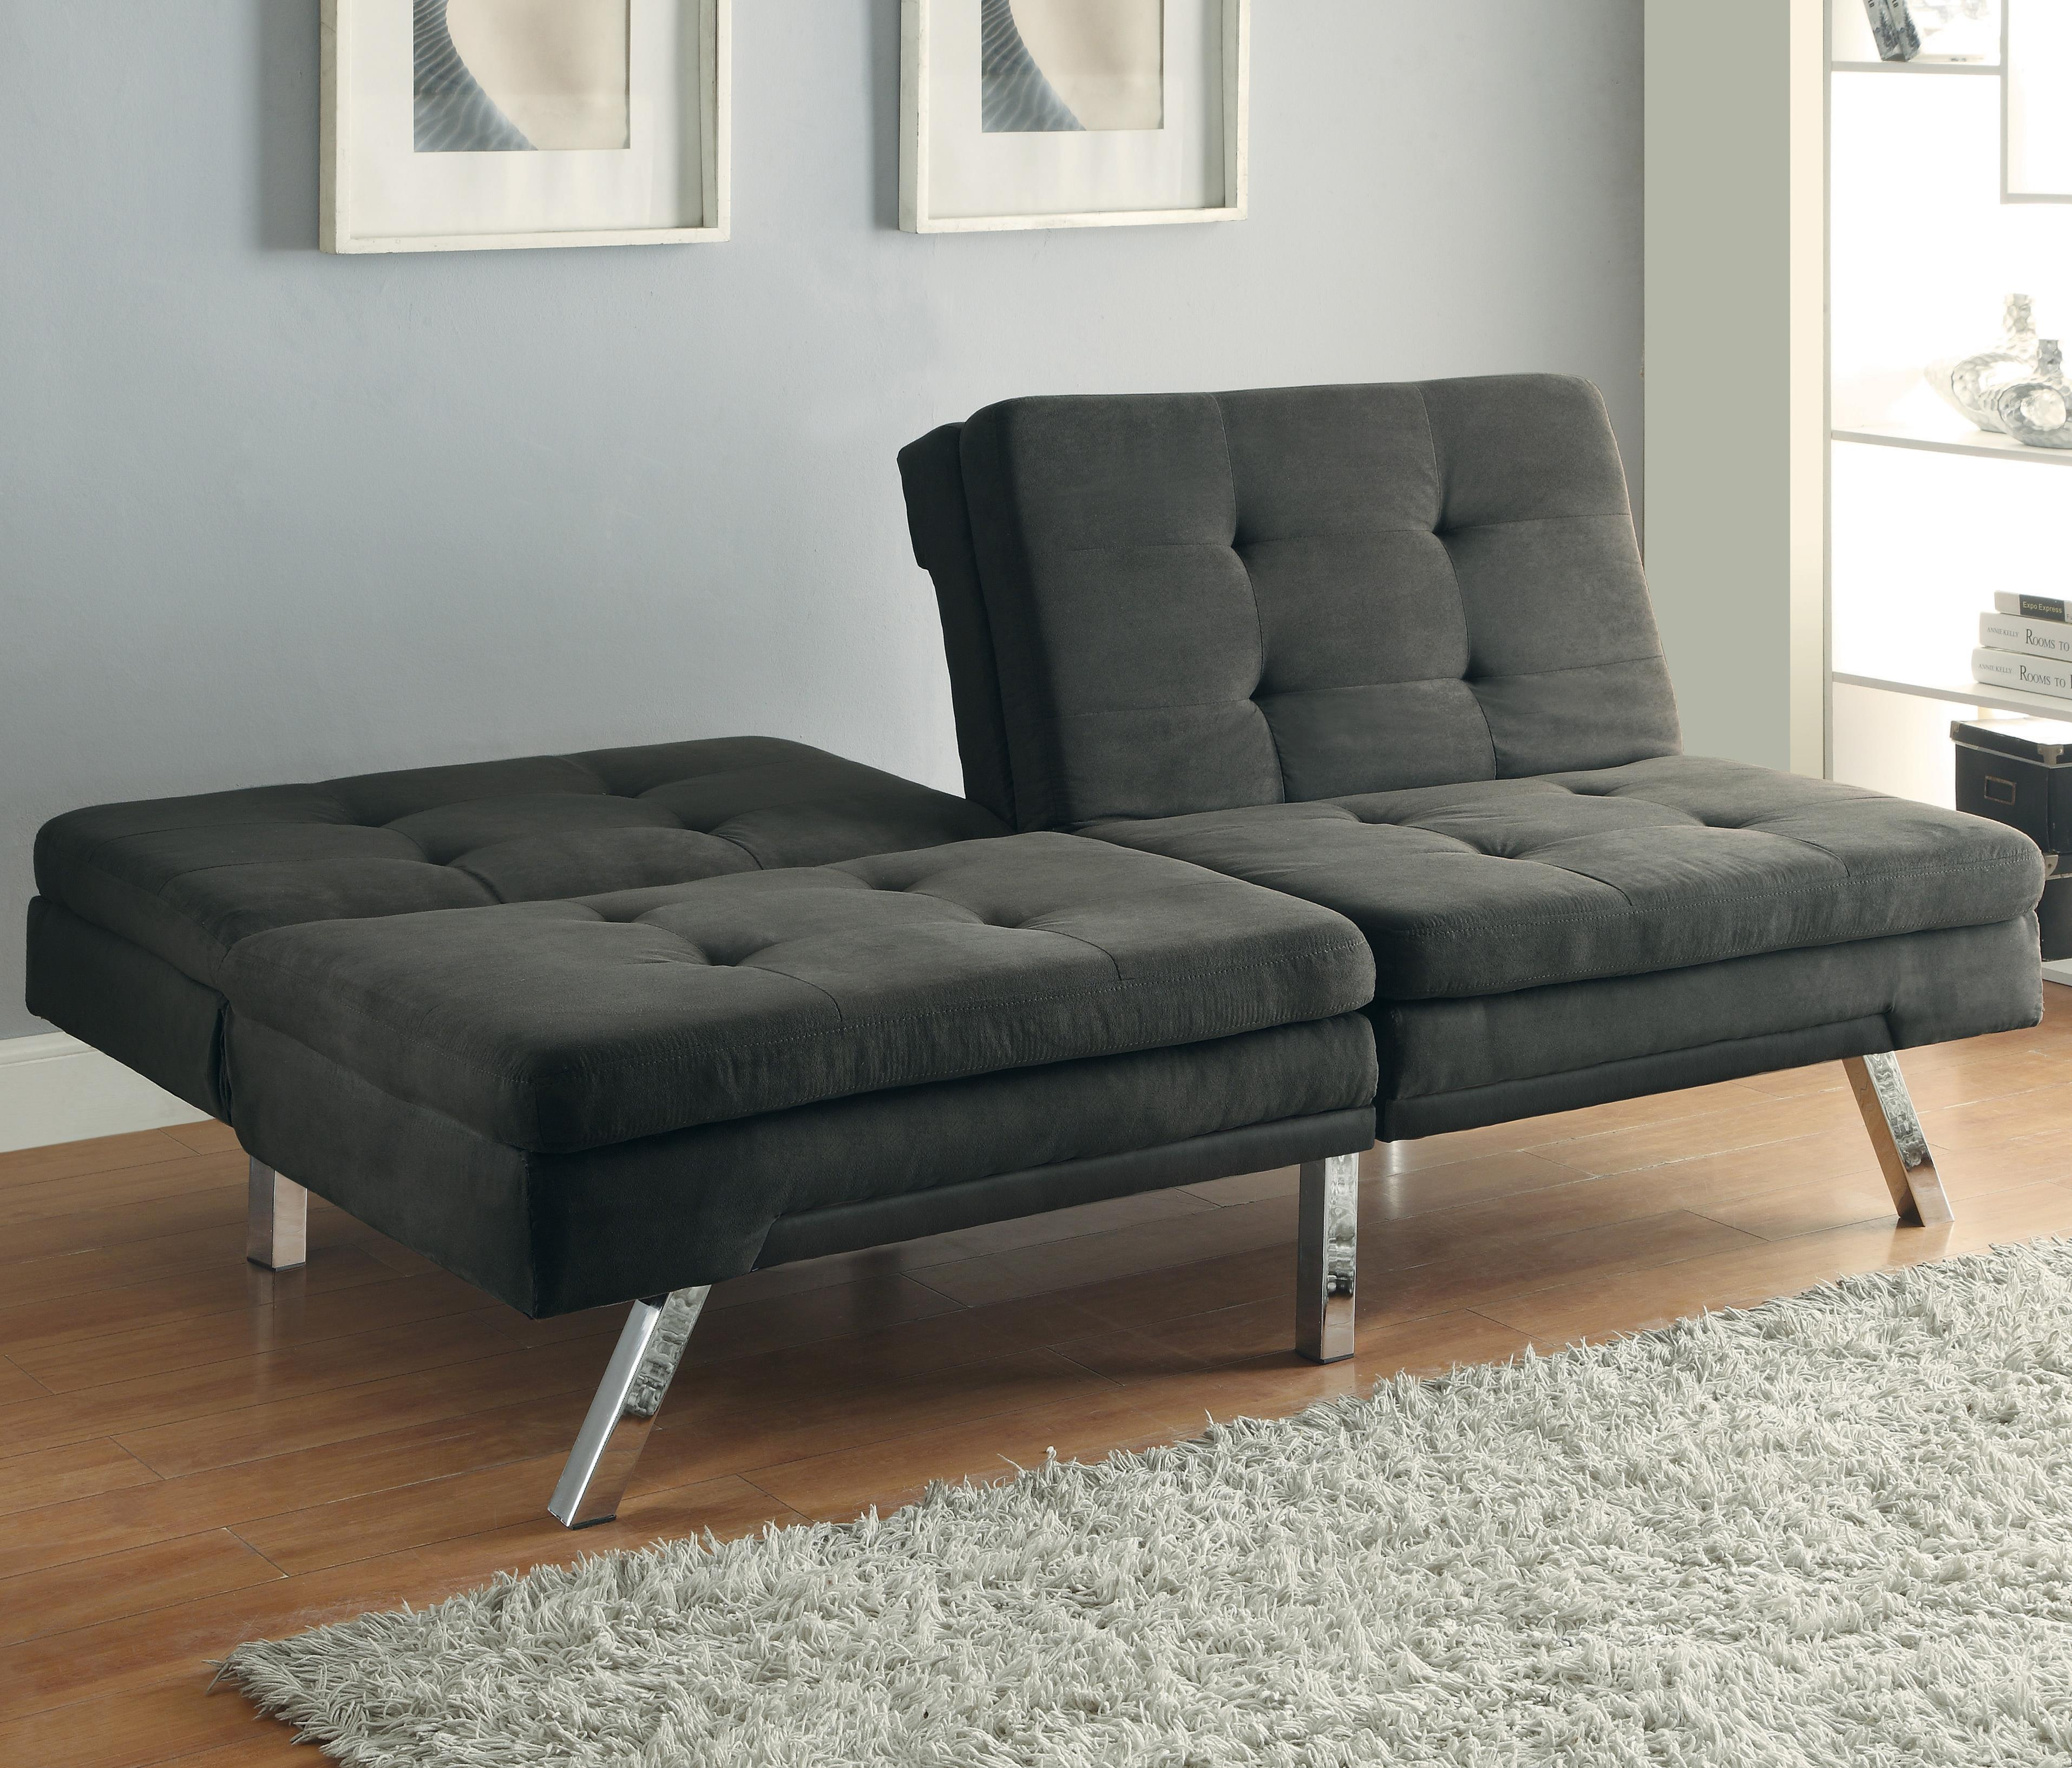 Coaster Sofa Beds and Futons -  Sofa Bed - Item Number: 300213